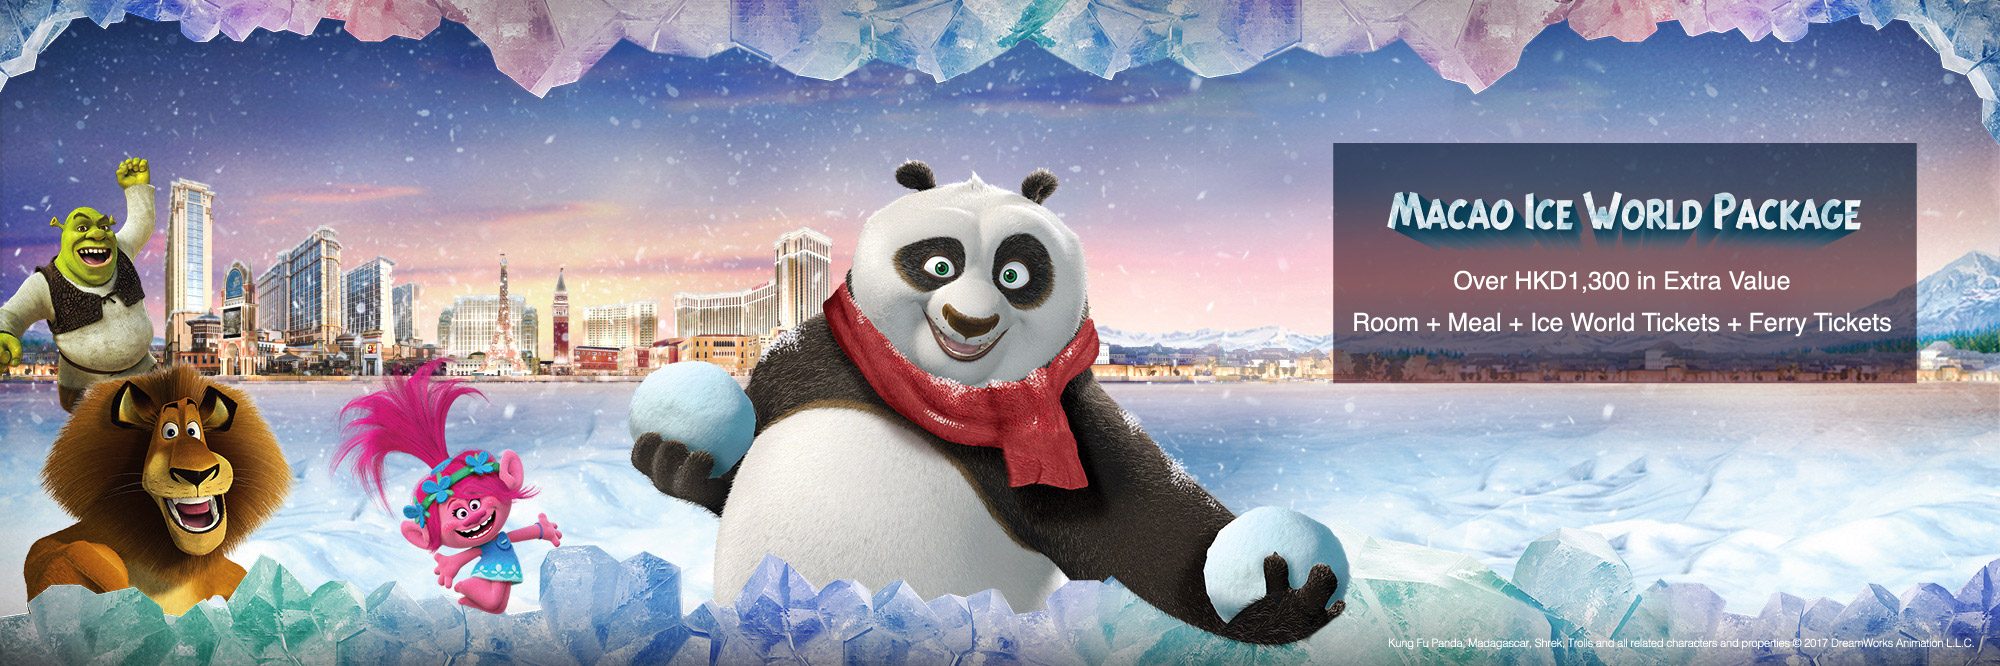 Macao Ice World Package